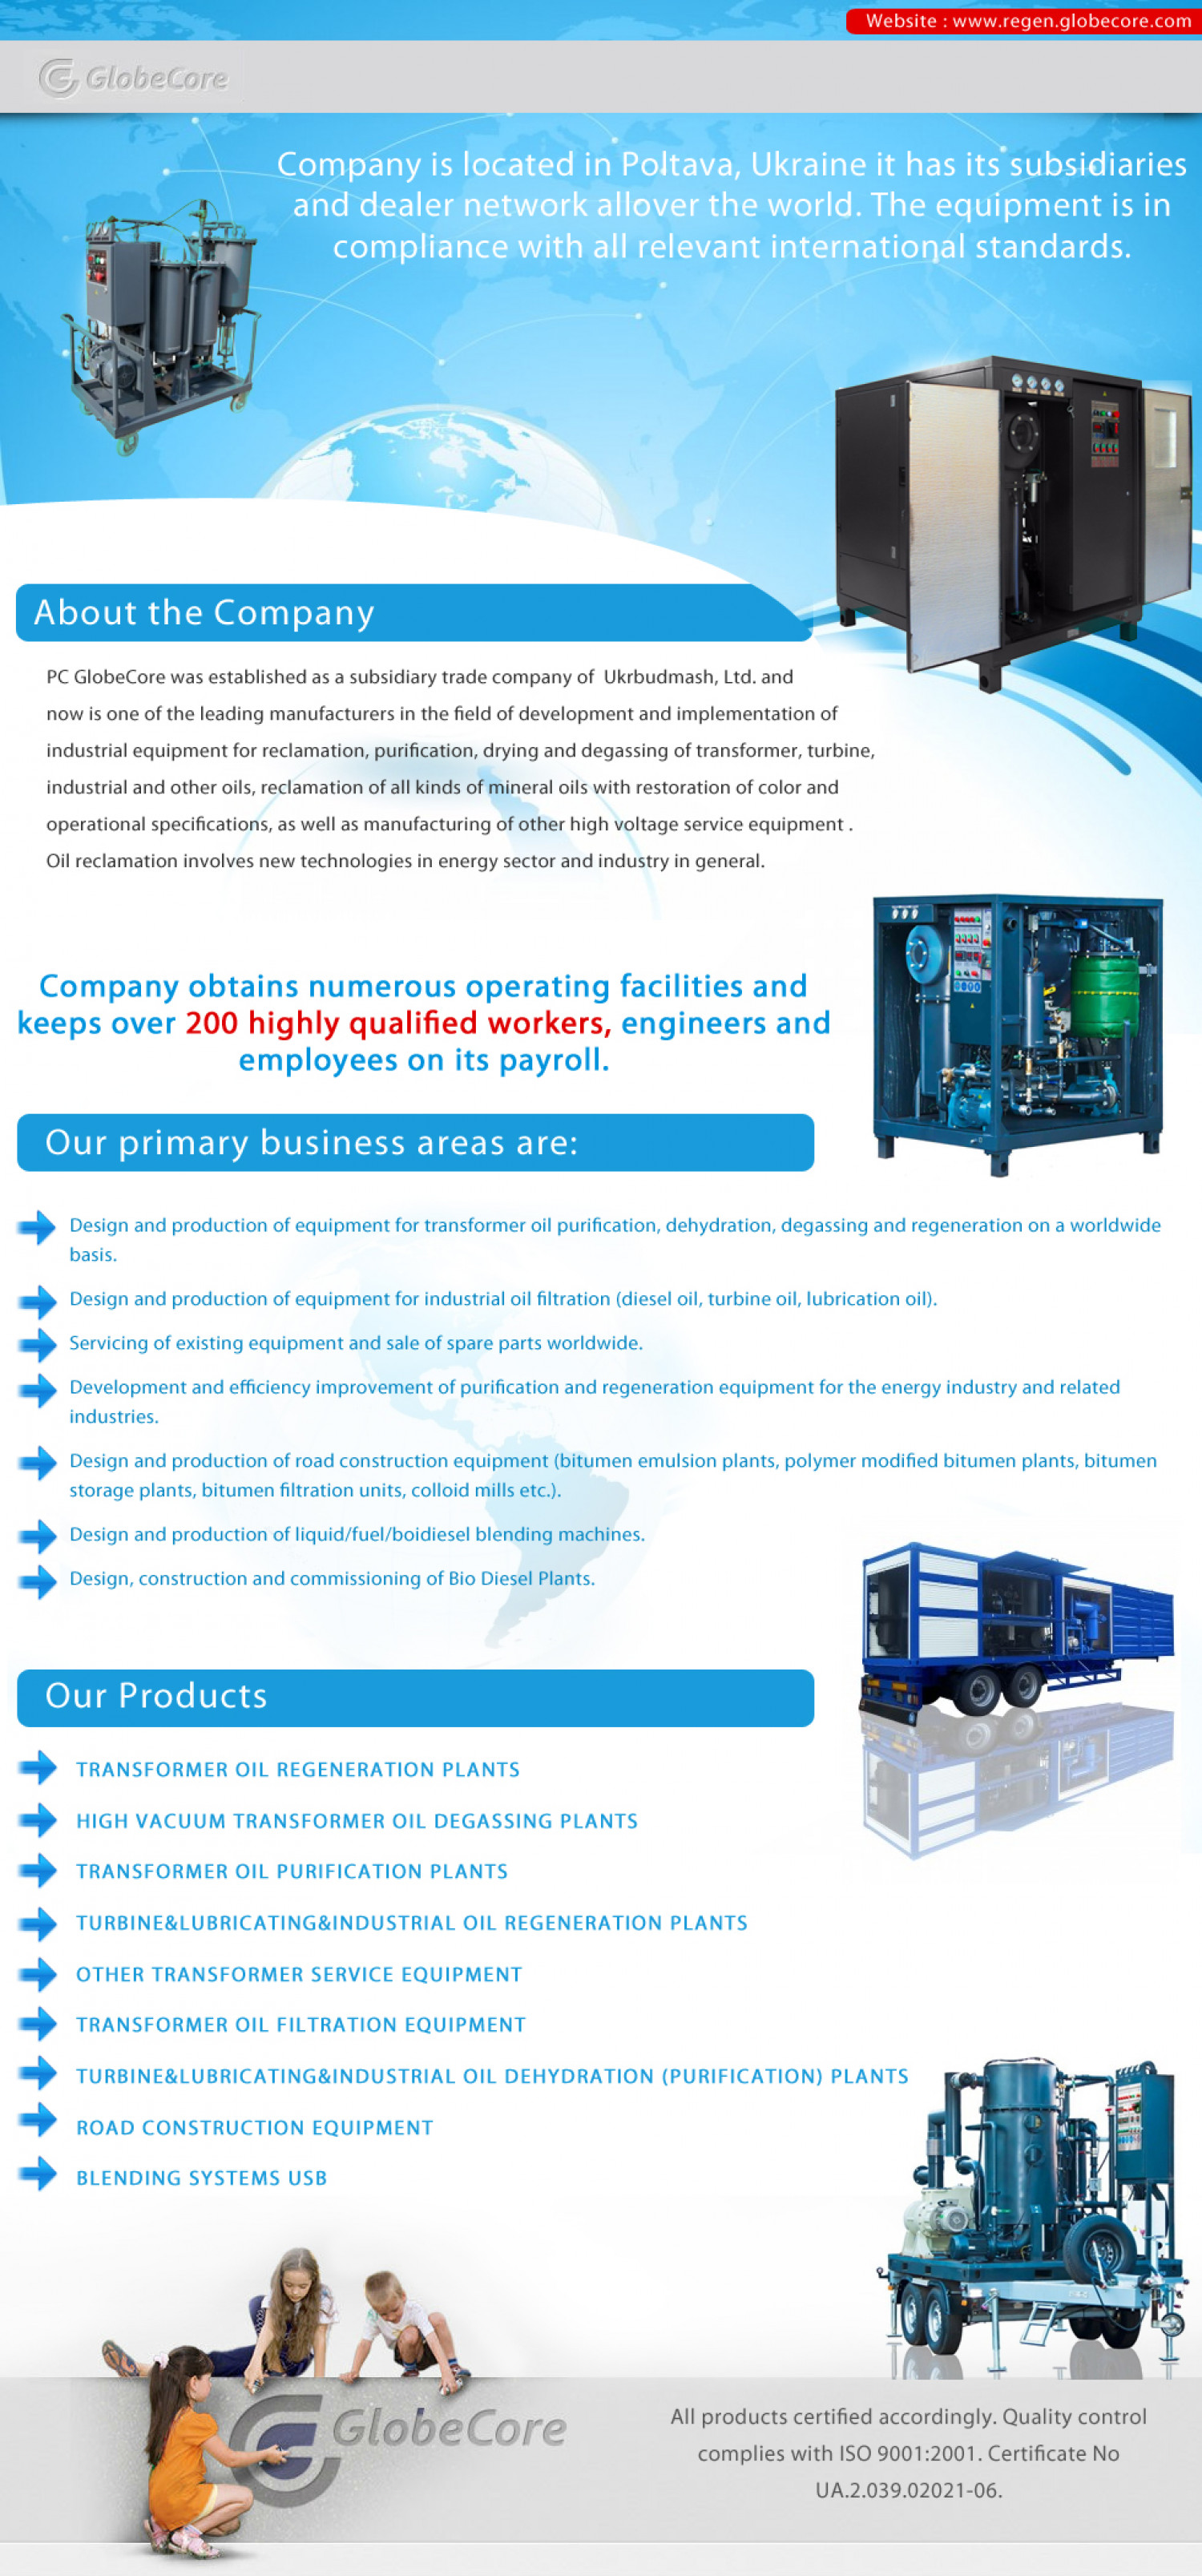 Industrial equipment by GlobeCore PC Infographic